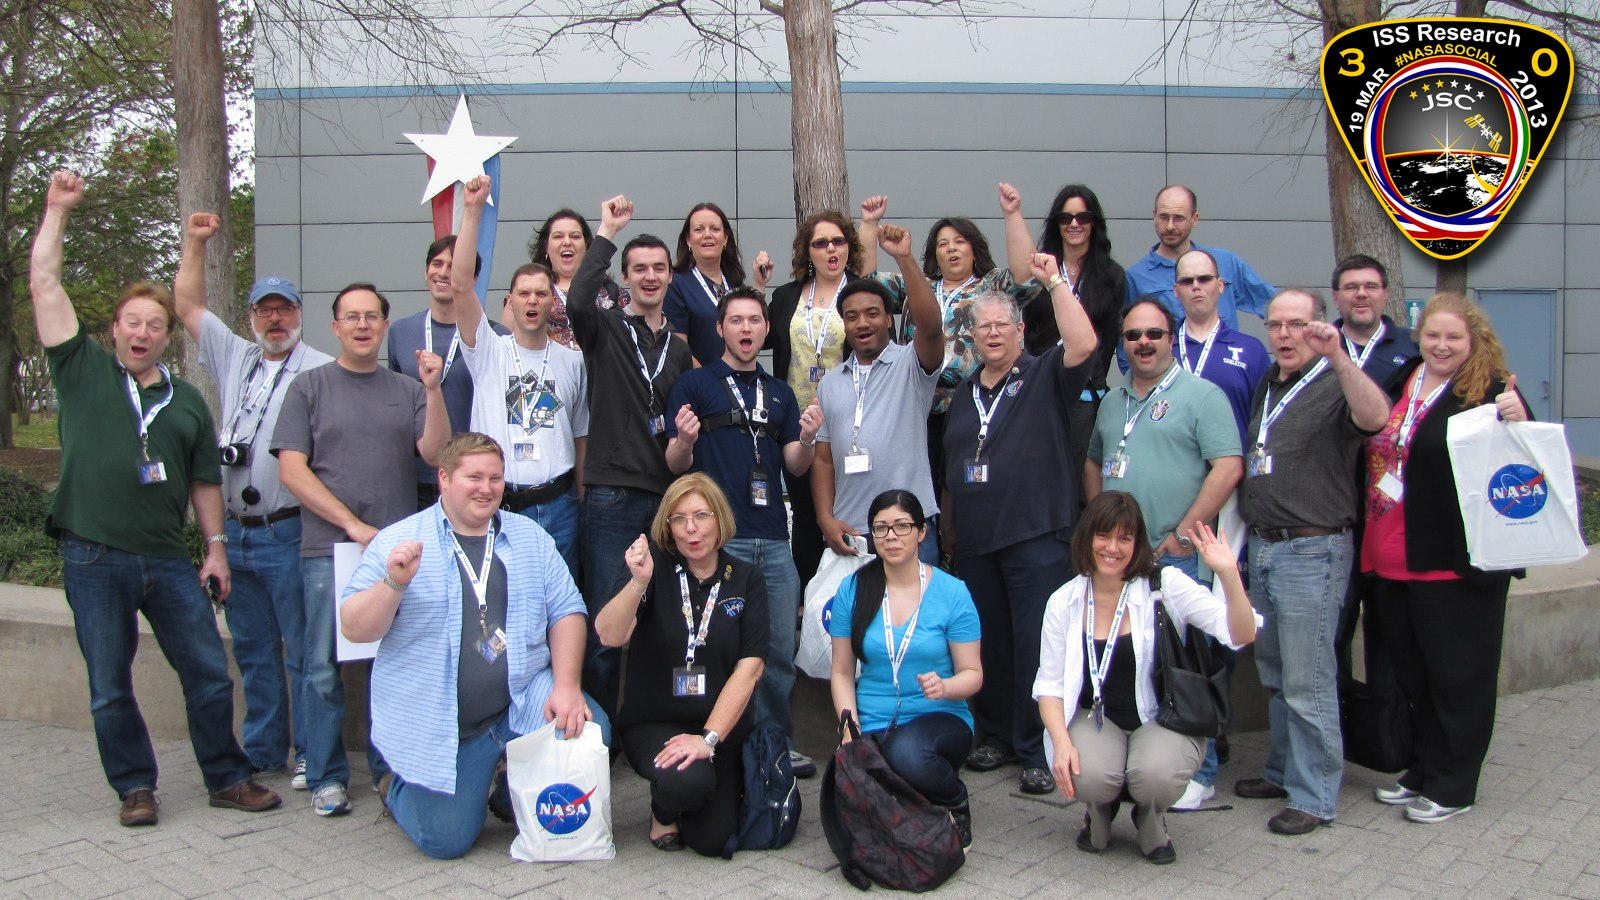 NASA Social ISS Group Photo.jpg